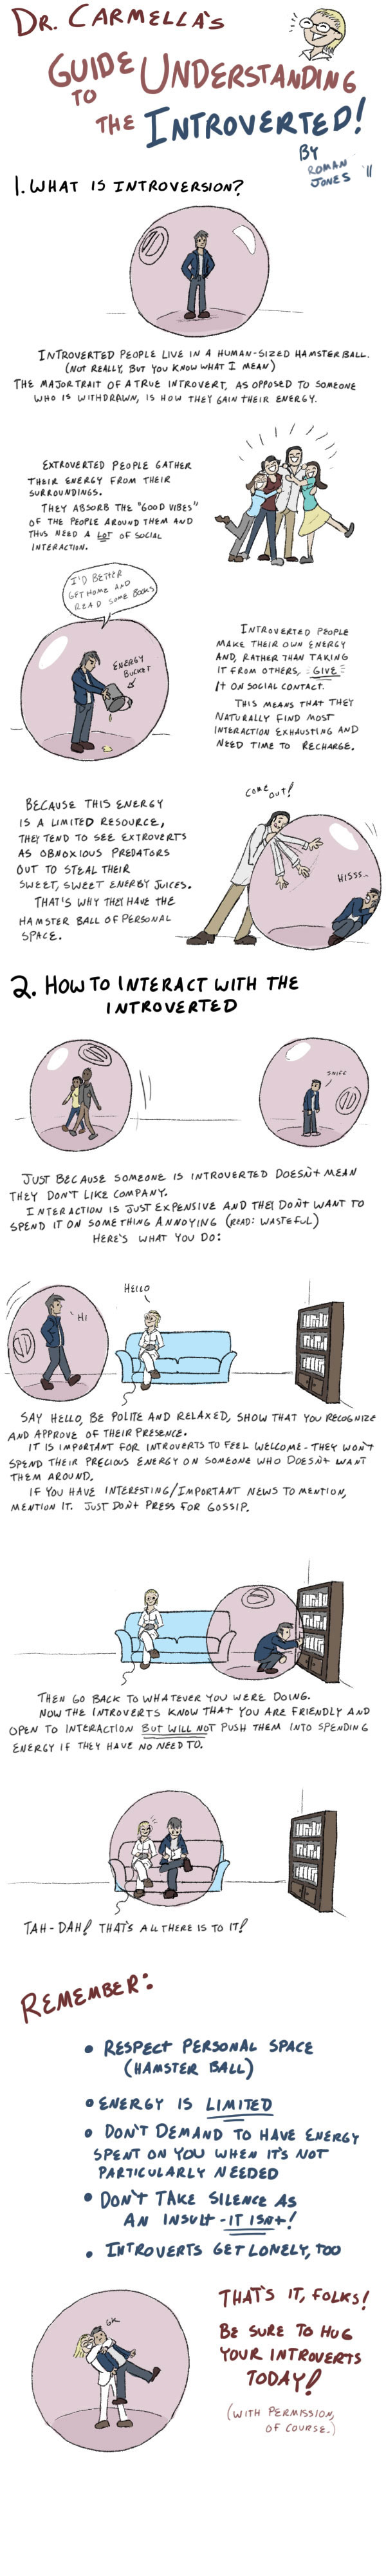 How to Live with Introverts (PDF available!) by RomanJones